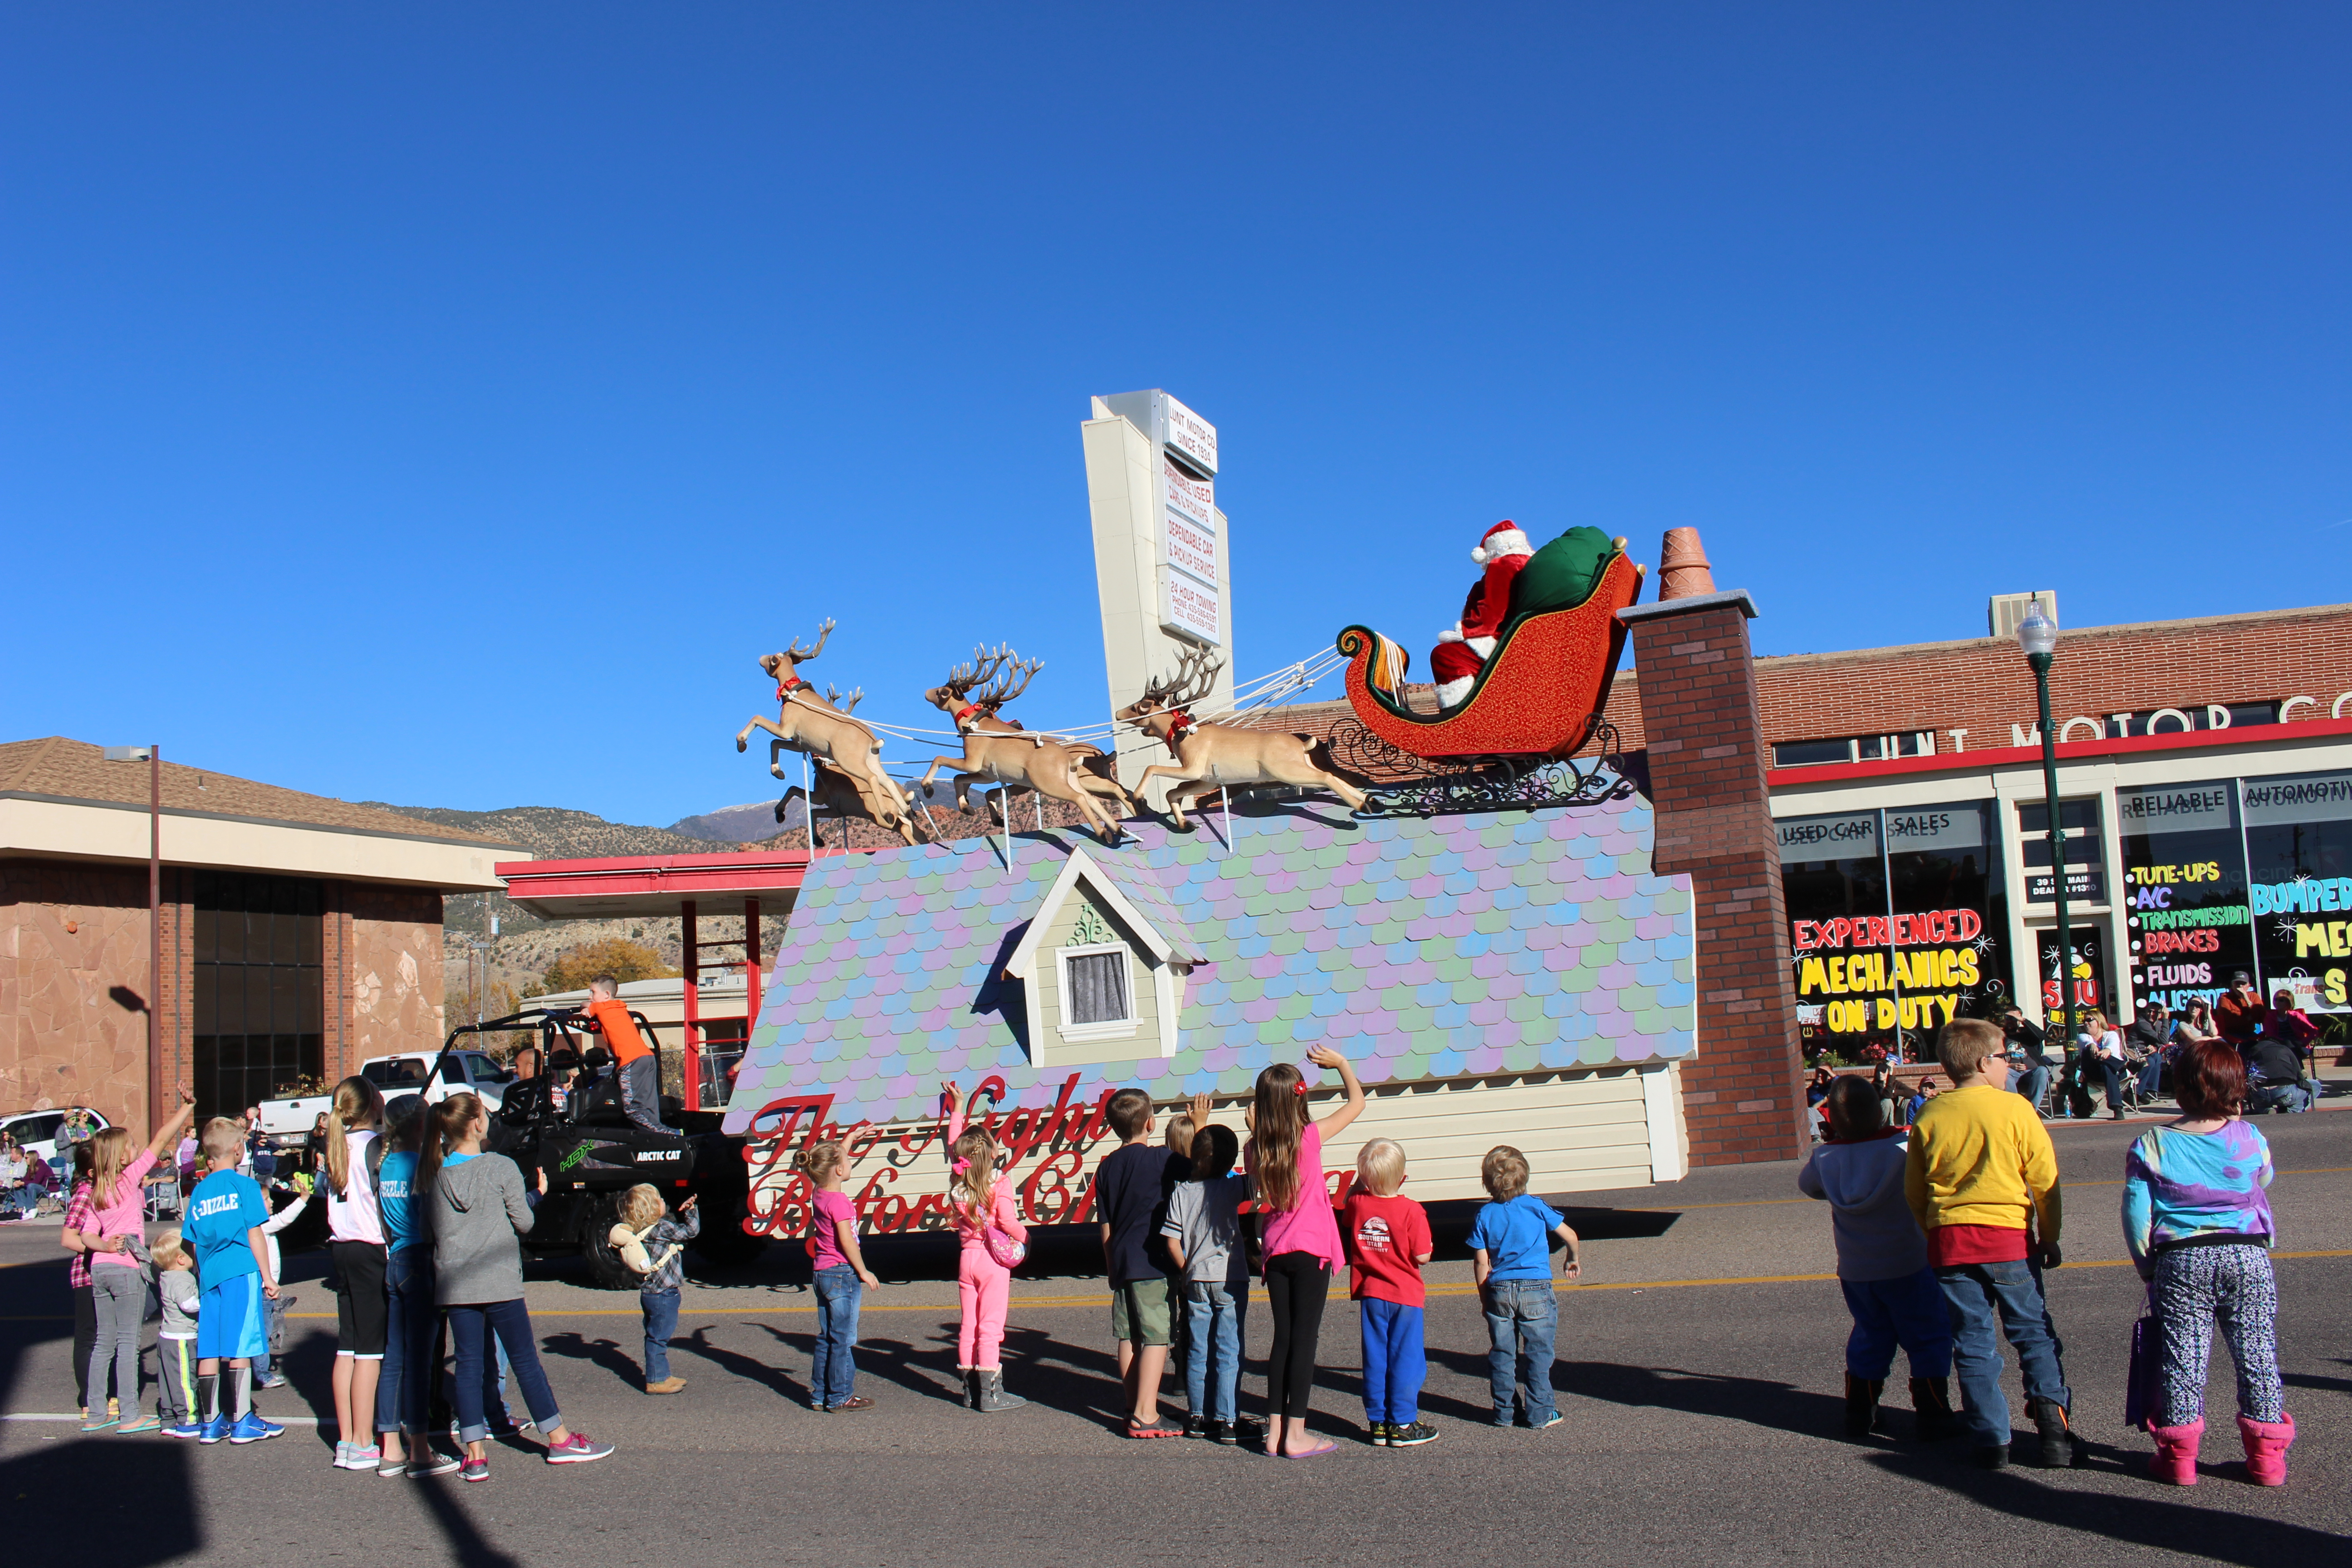 Santa Claus in the Storybook Parade, St. George News